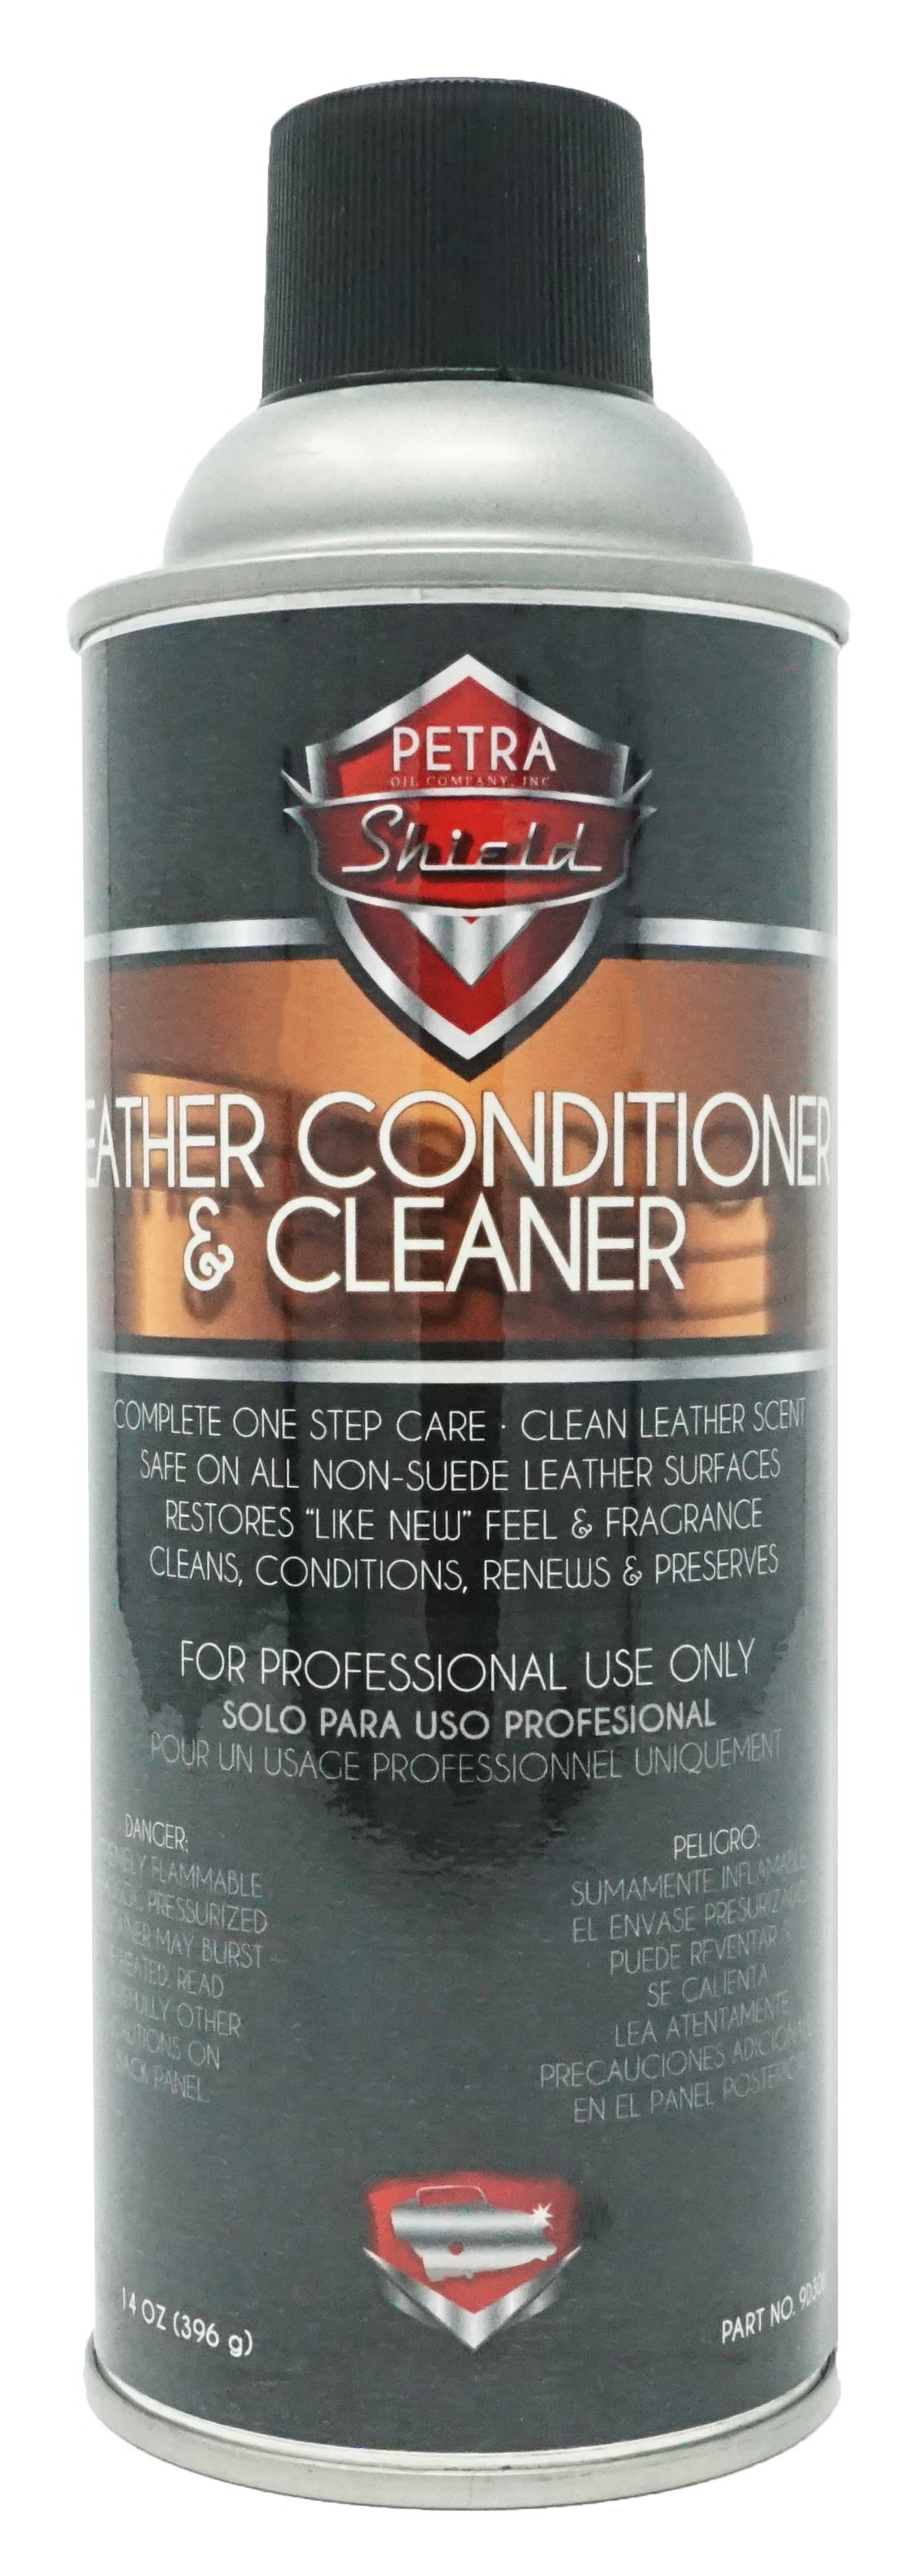 PN 9D306 Leather Conditioner & Cleaner